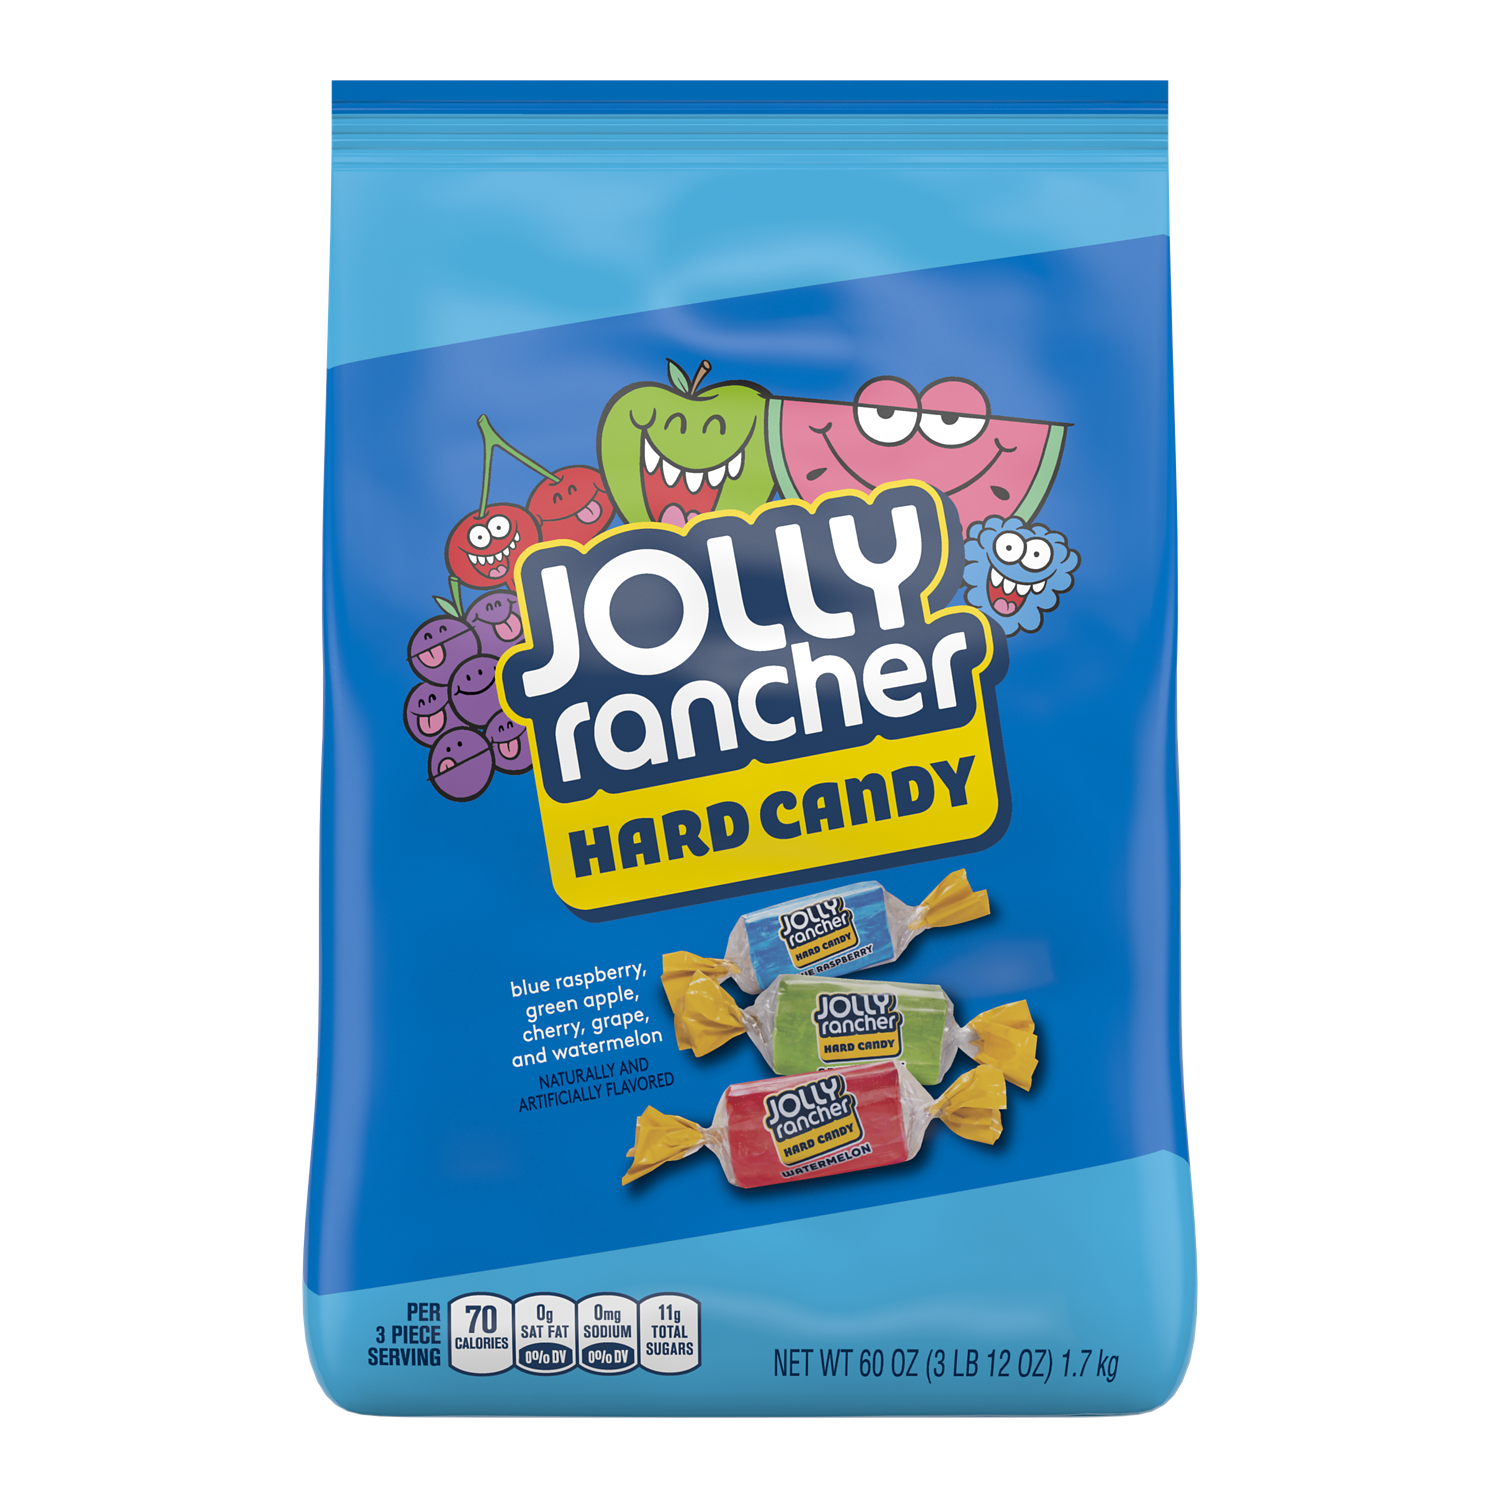 JOLLY RANCHER Original Flavors Hard Candy, 60 oz bag - Front of Package